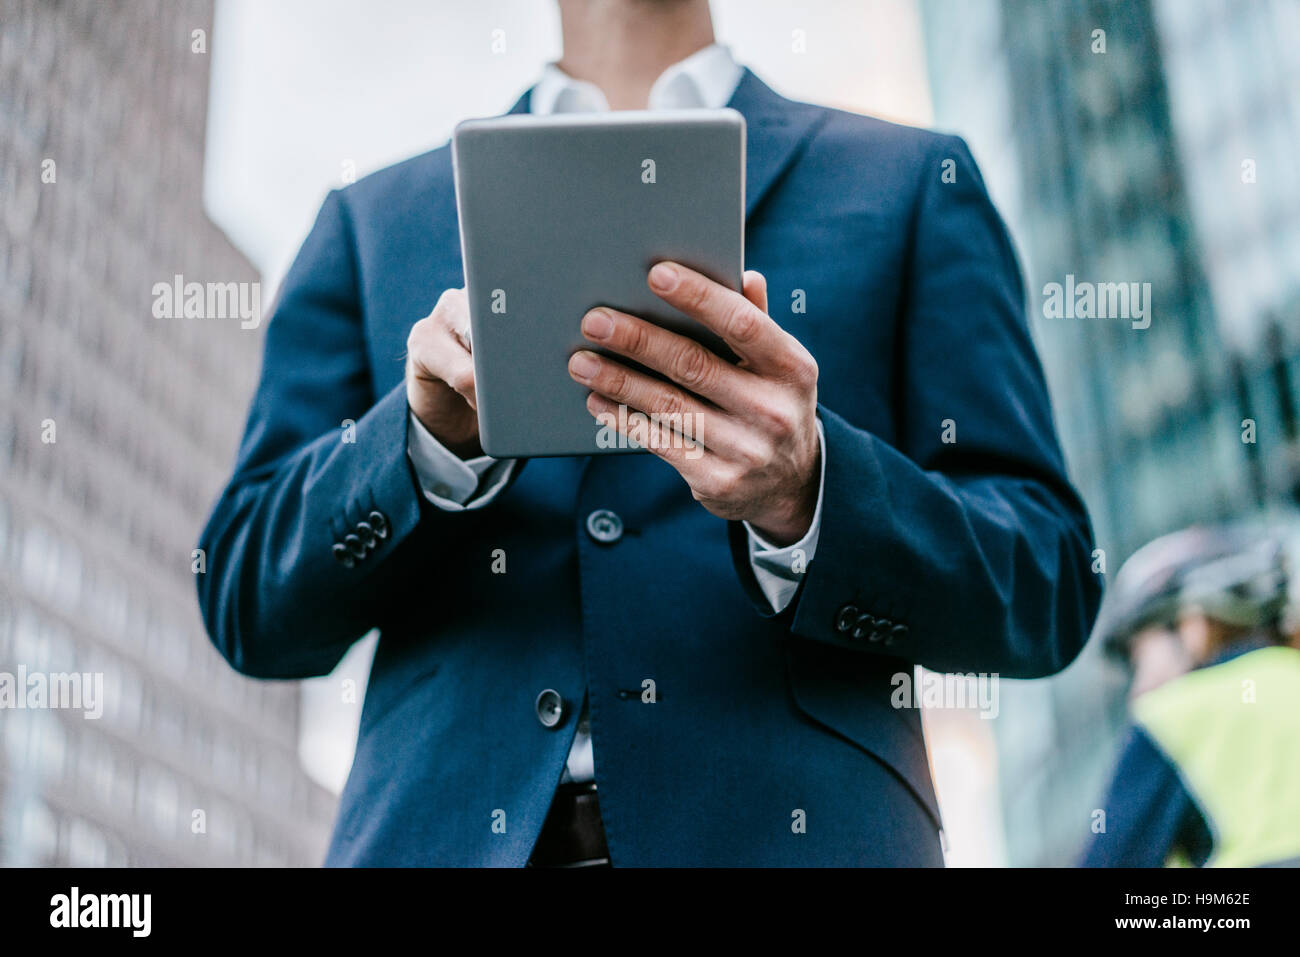 Businessman using talet, close-up - Stock Image